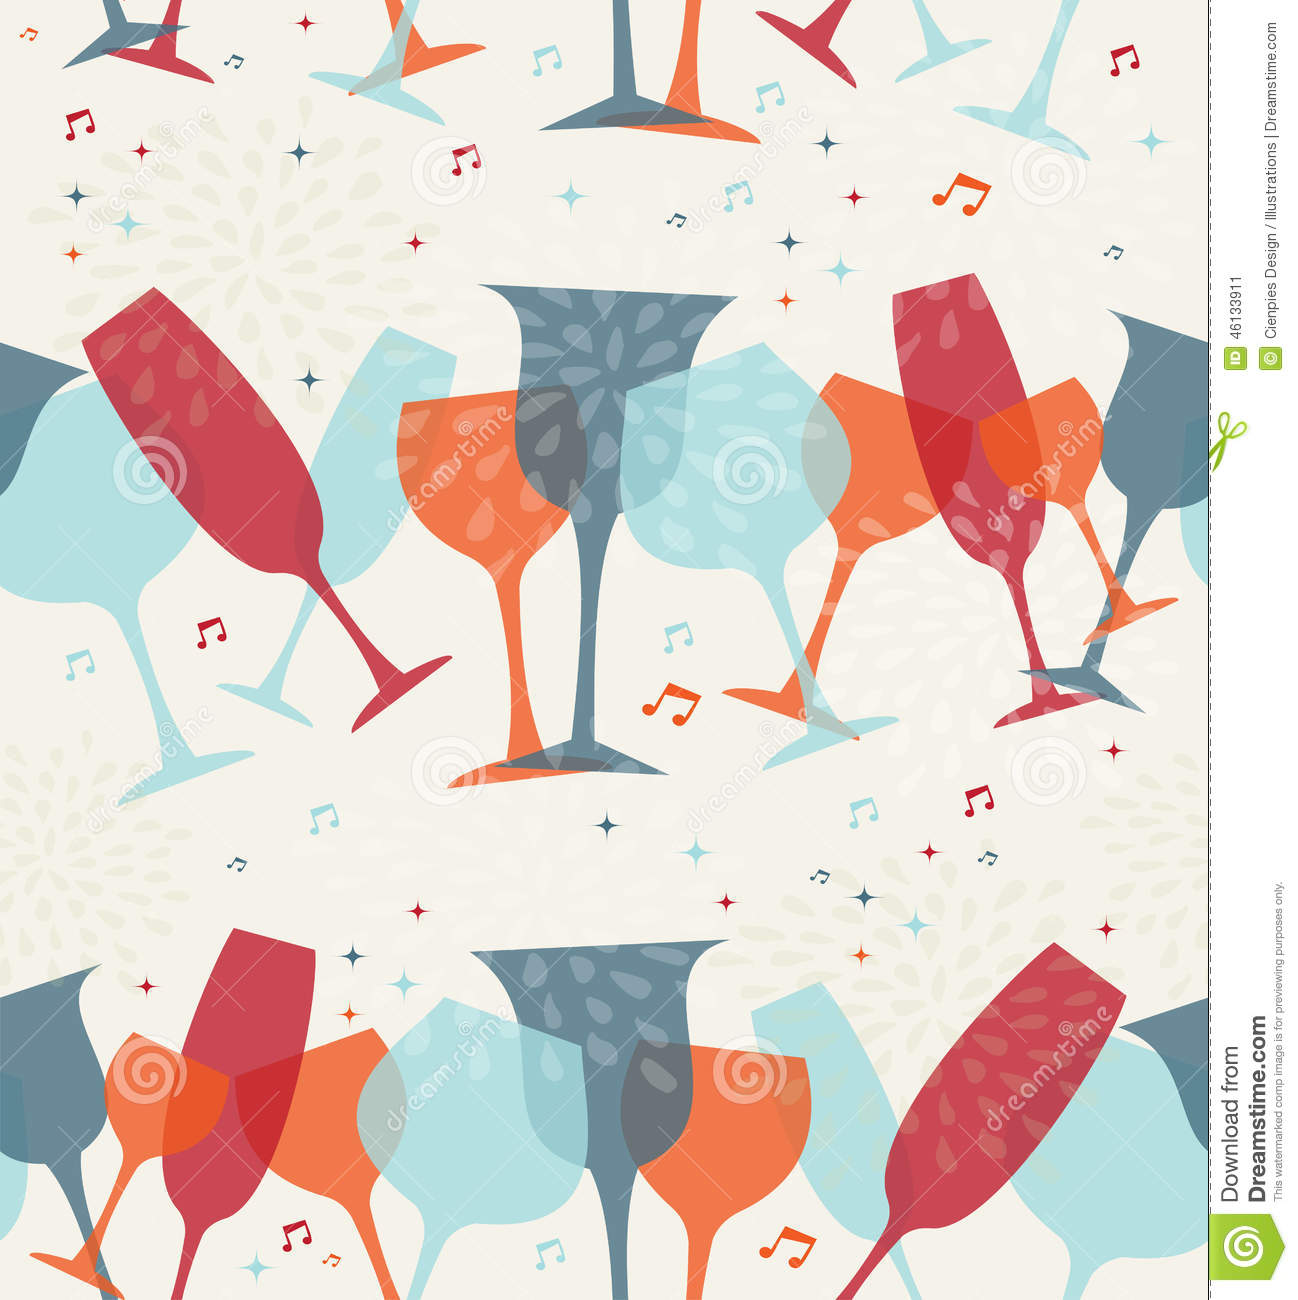 cocktail glass seamless pattern background stock vector